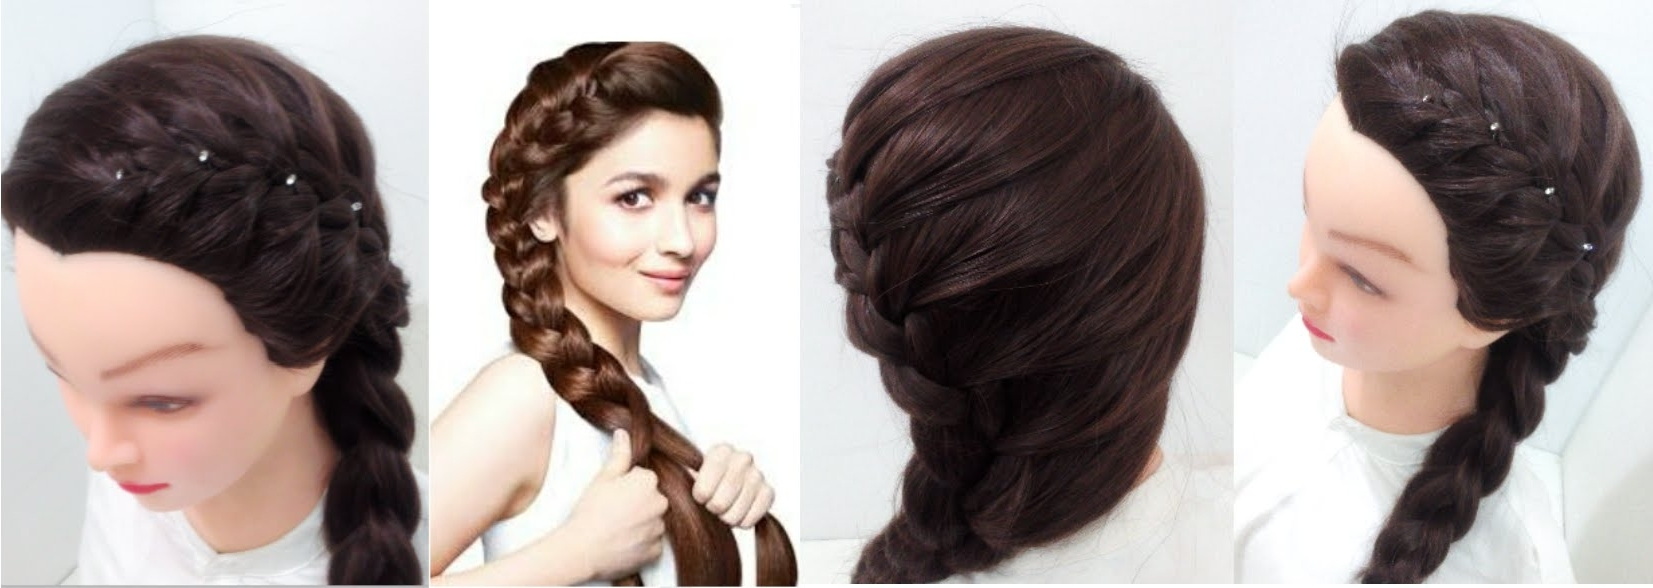 Latest Side Braid Hairstyles Inside Side Braid: Hairstyles For Medium Hair – Youtube (View 9 of 15)